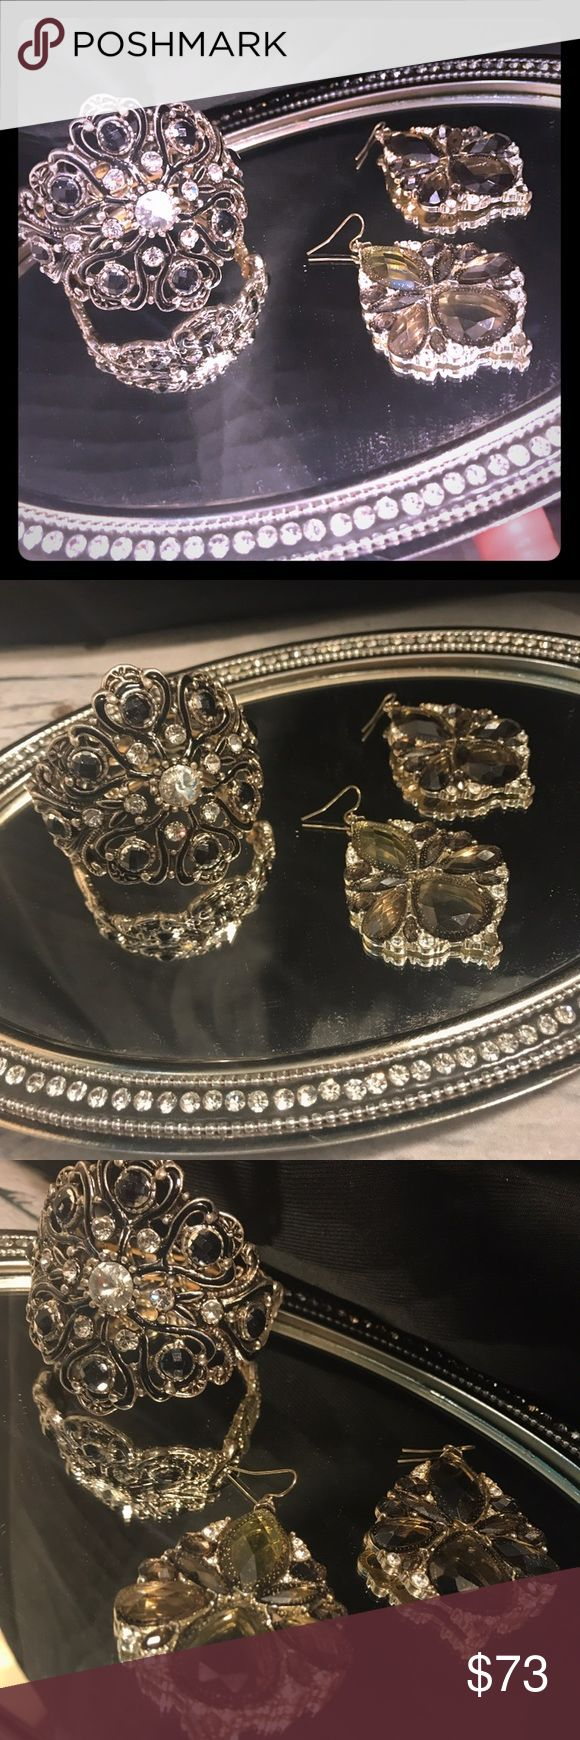 🎊SALE! ✨🆕glam crystal cuff & earrings never worn Neiman Marcus jewelry designer: Lydell NYC glam crystal cuff & earrings never worn! Vintage inspired cuff org $75 earrings org $65 Neiman Marcus Jewelry